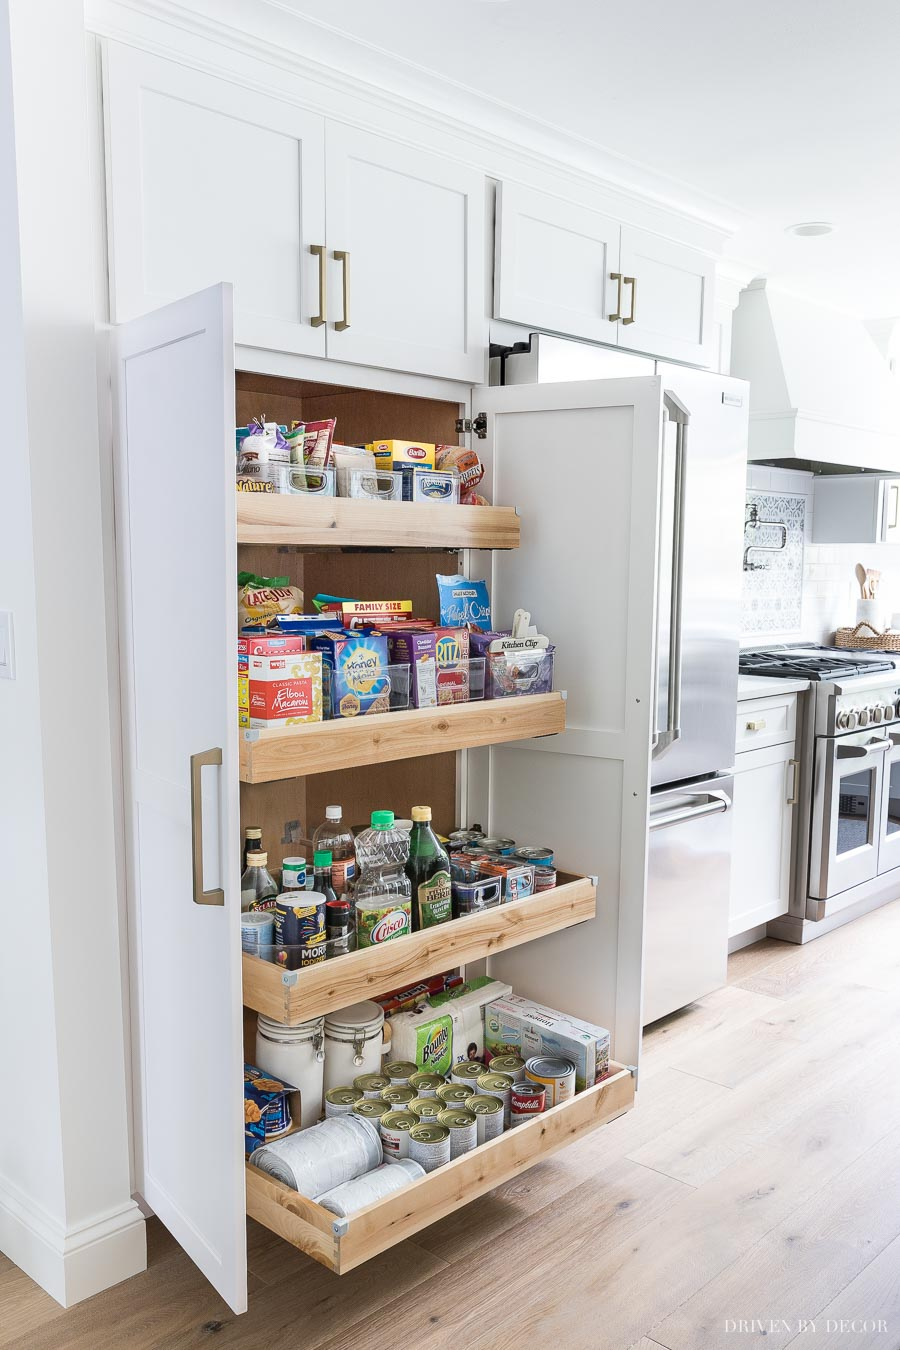 A large pantry was a must-have for my kitchen remodel! LOVE my new tall & deep pantry with pull out shelves - so much storage space!